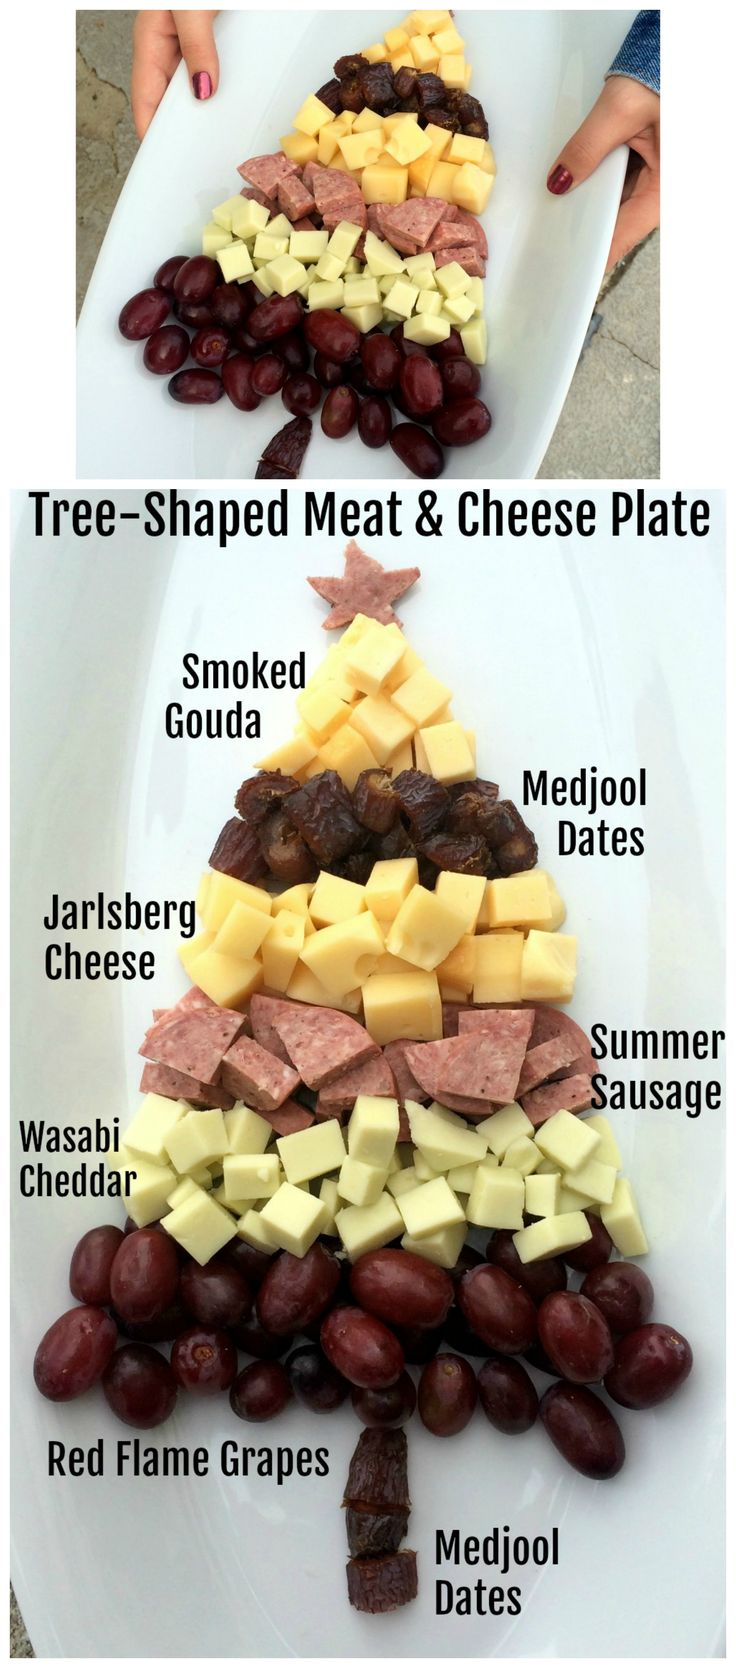 Tree-Shaped Meat and Cheese Plate: Whether for the holidays or any day, it's fun to easy to create a meat and cheese plate in the shape of a tree. Any charcuterie board is twice as festive if you *spruce* it up! (See what I did there?)  #meatandcheeseplate #charcuterieboard #appetizerplate #shockinglydelicious #holidaycheeseboard